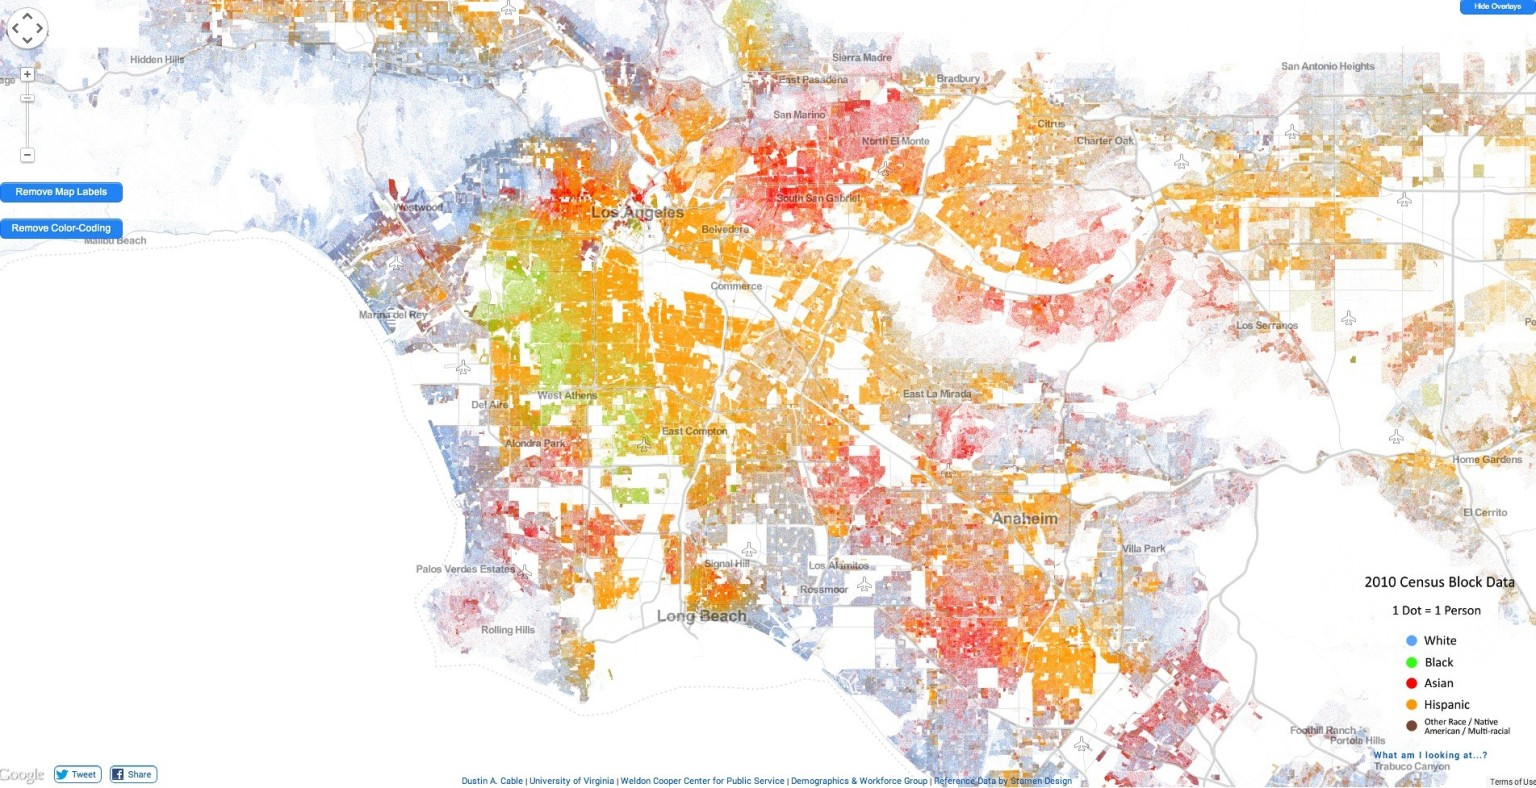 Racial Dot Map In LA Highlights Segregation By Neighborhood HuffPost